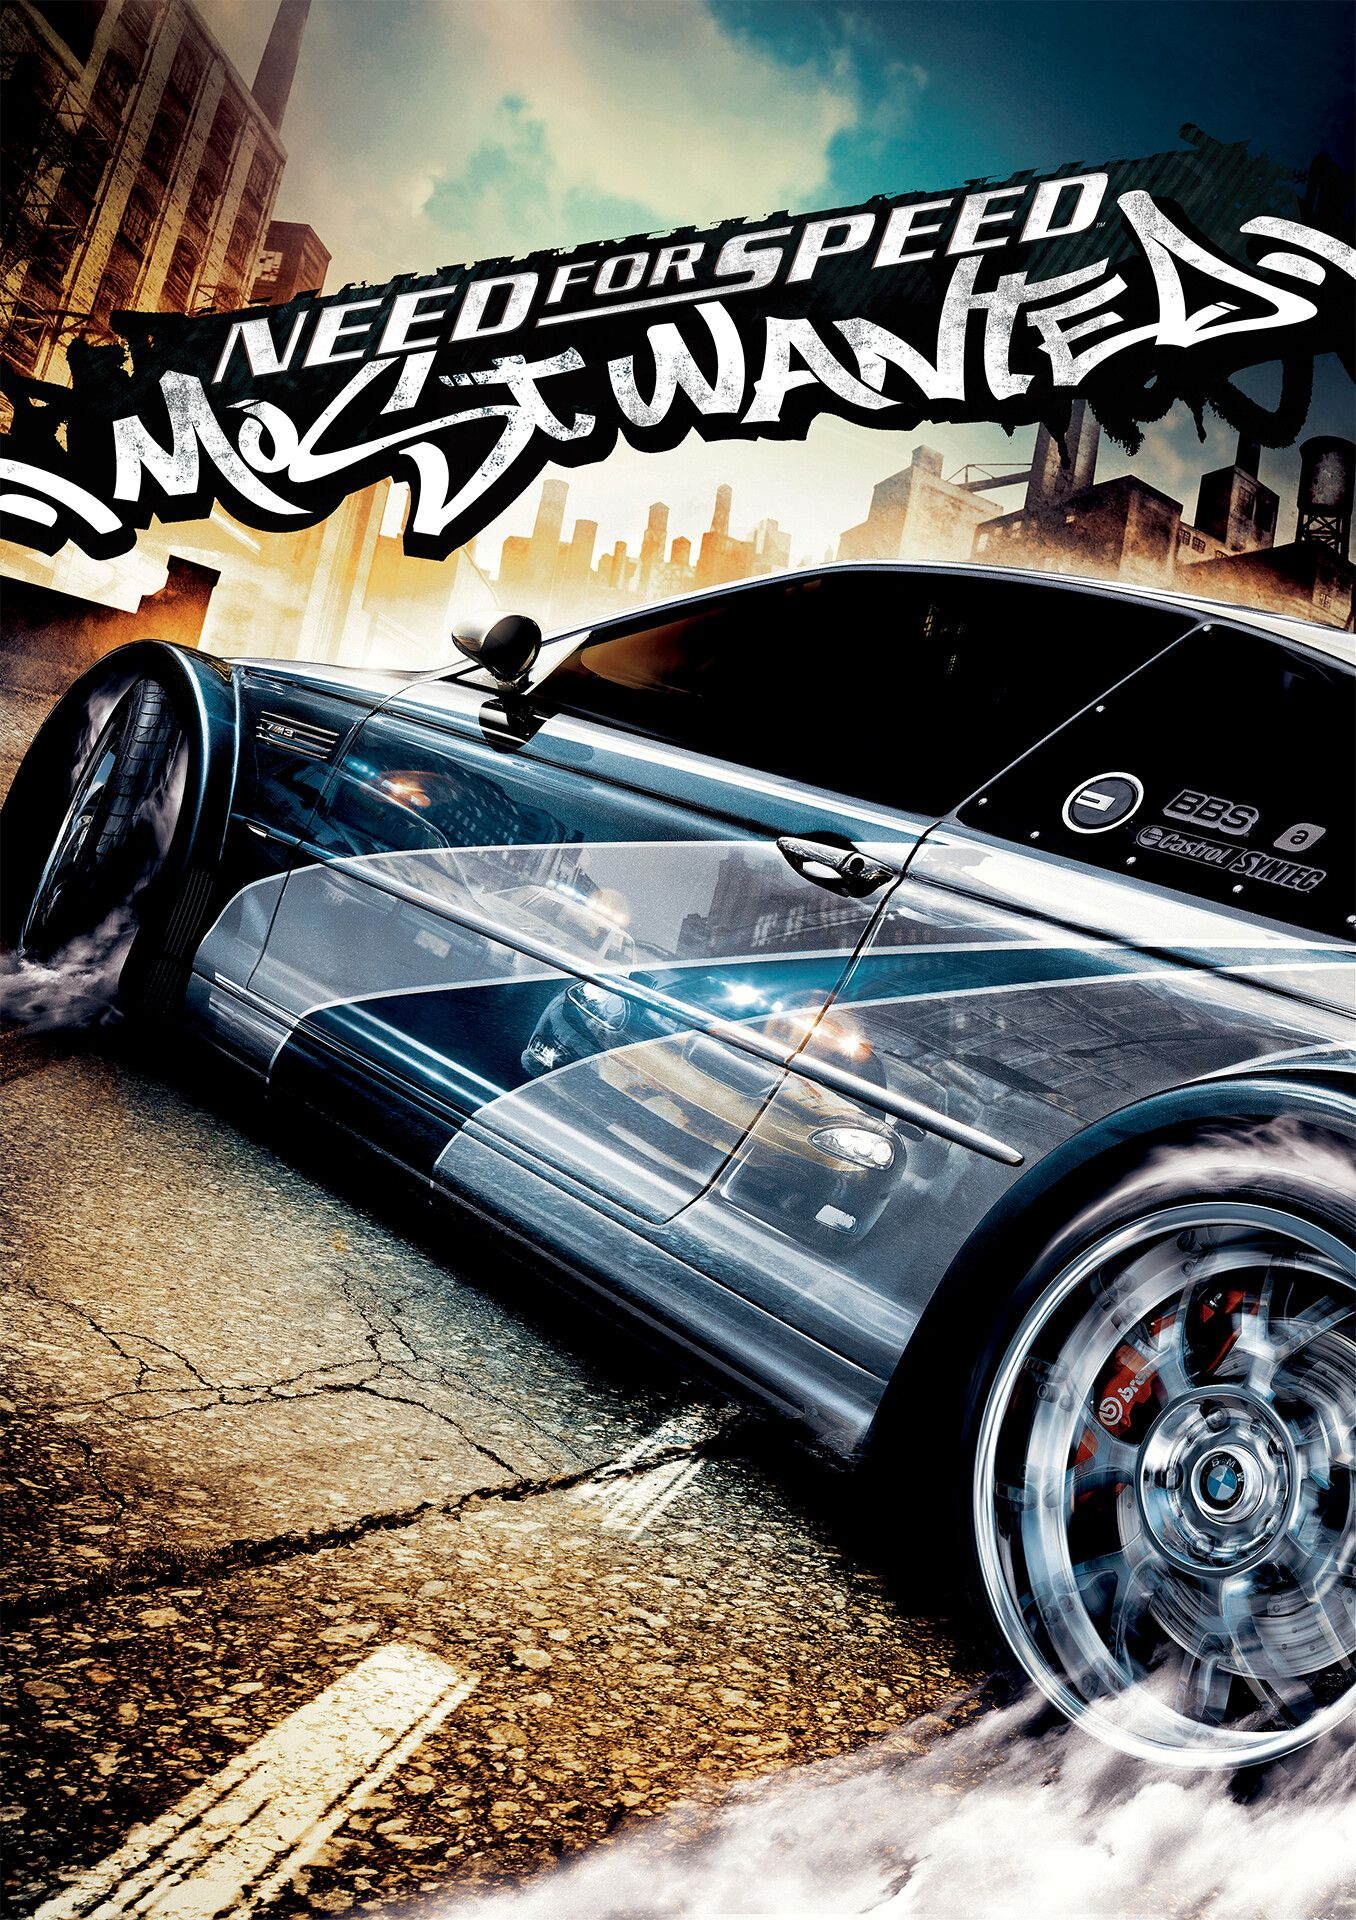 Artstation Free Print Need For Speed Most Wanted 2005 Agentough Need For Speed Need For Speed Cars Need For Speed Games